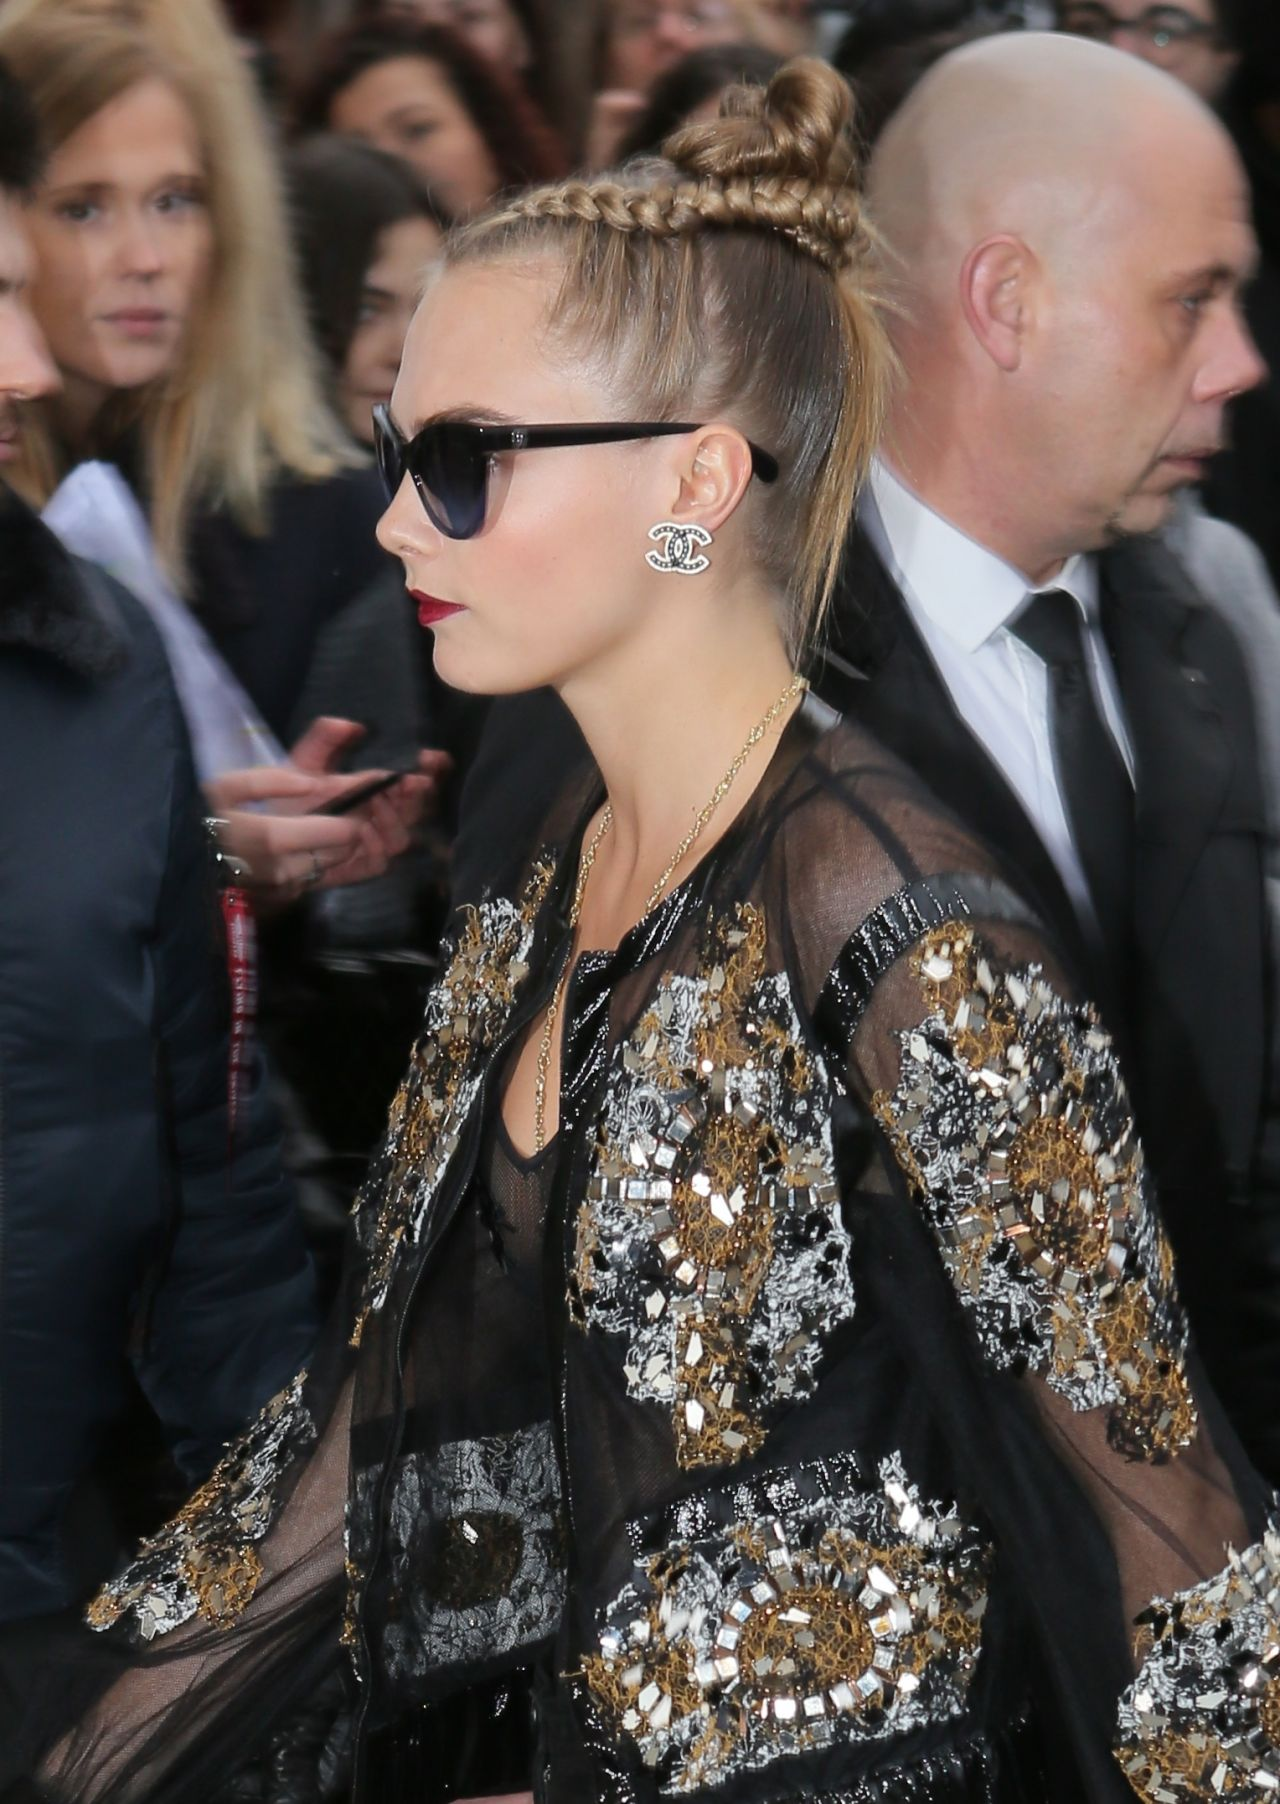 cara-delevingne-chanel-haute-couture-spring-summer-2016-fashion-show-in-paris-9